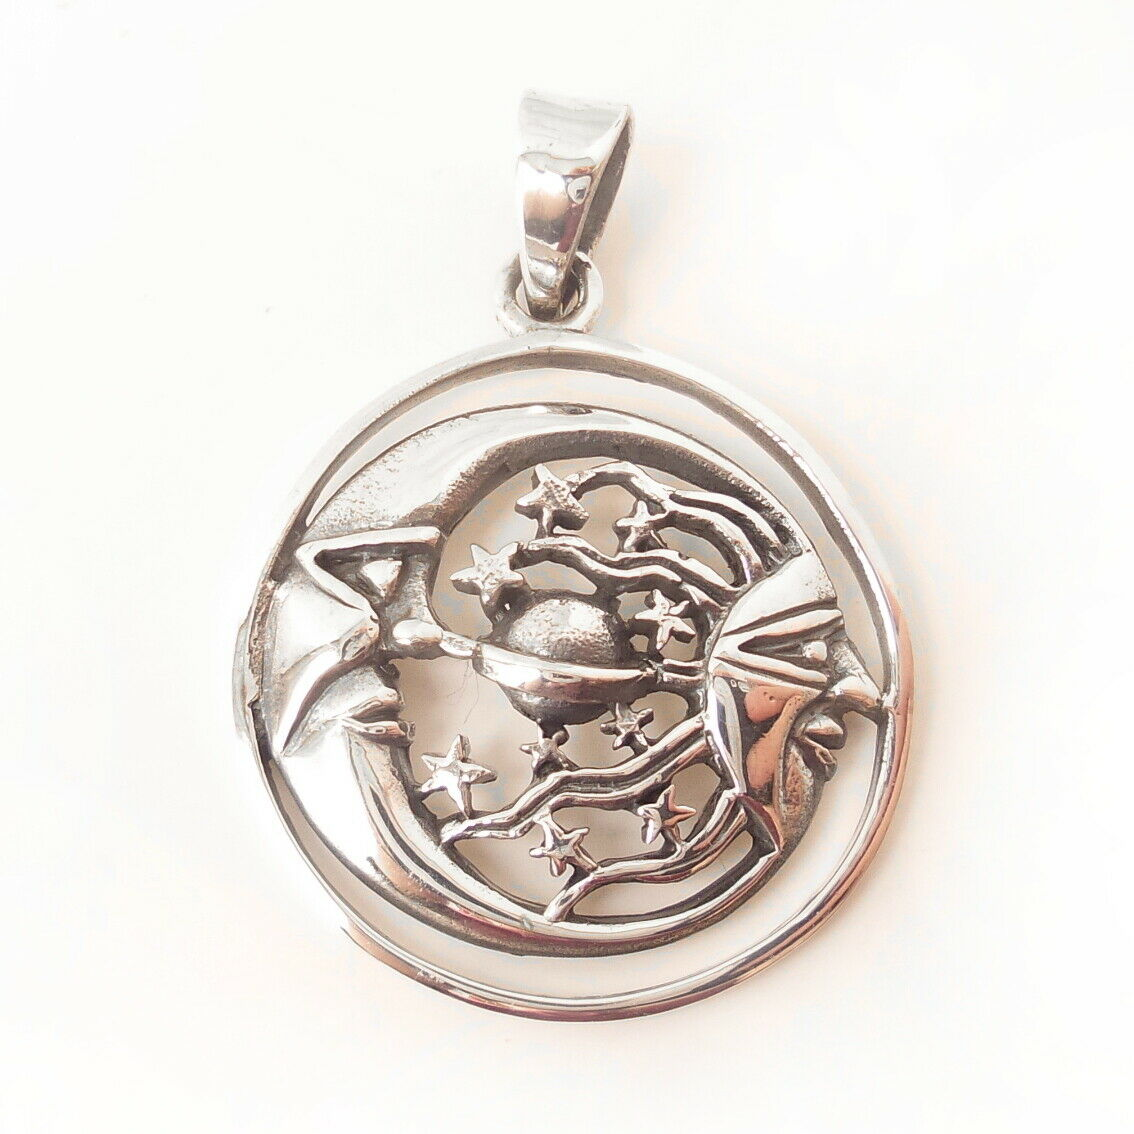 Celestial Moon Sun Stars .925 Sterling Silver Pendant Graduation Gift Charm